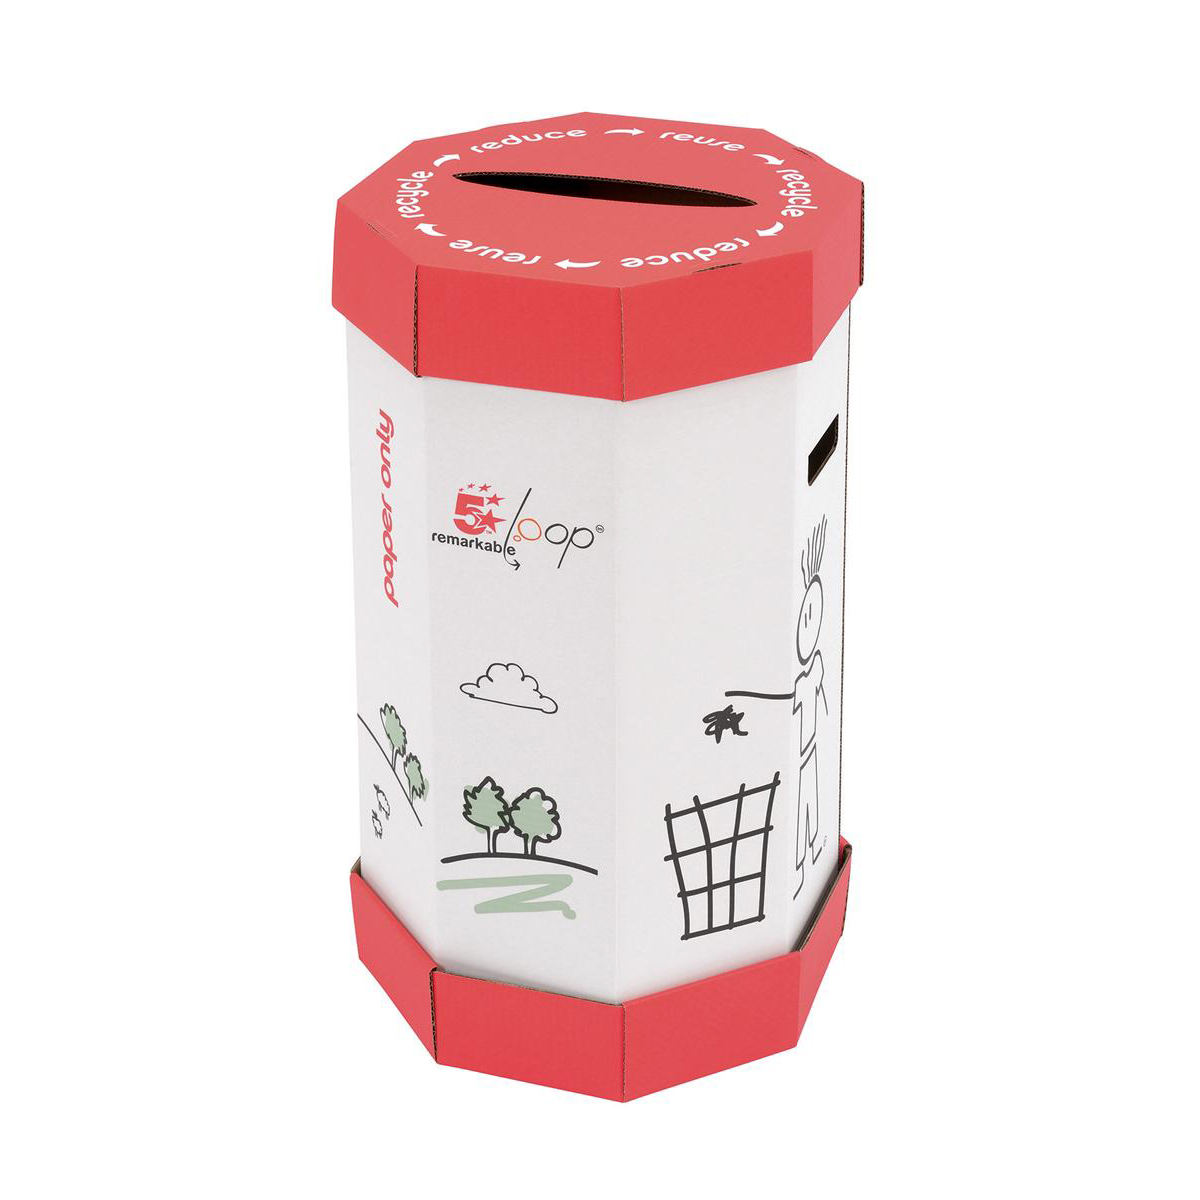 Business Remarkable Loop Paper Recycling Office Waste Bin 60 Litres [Pack 5]